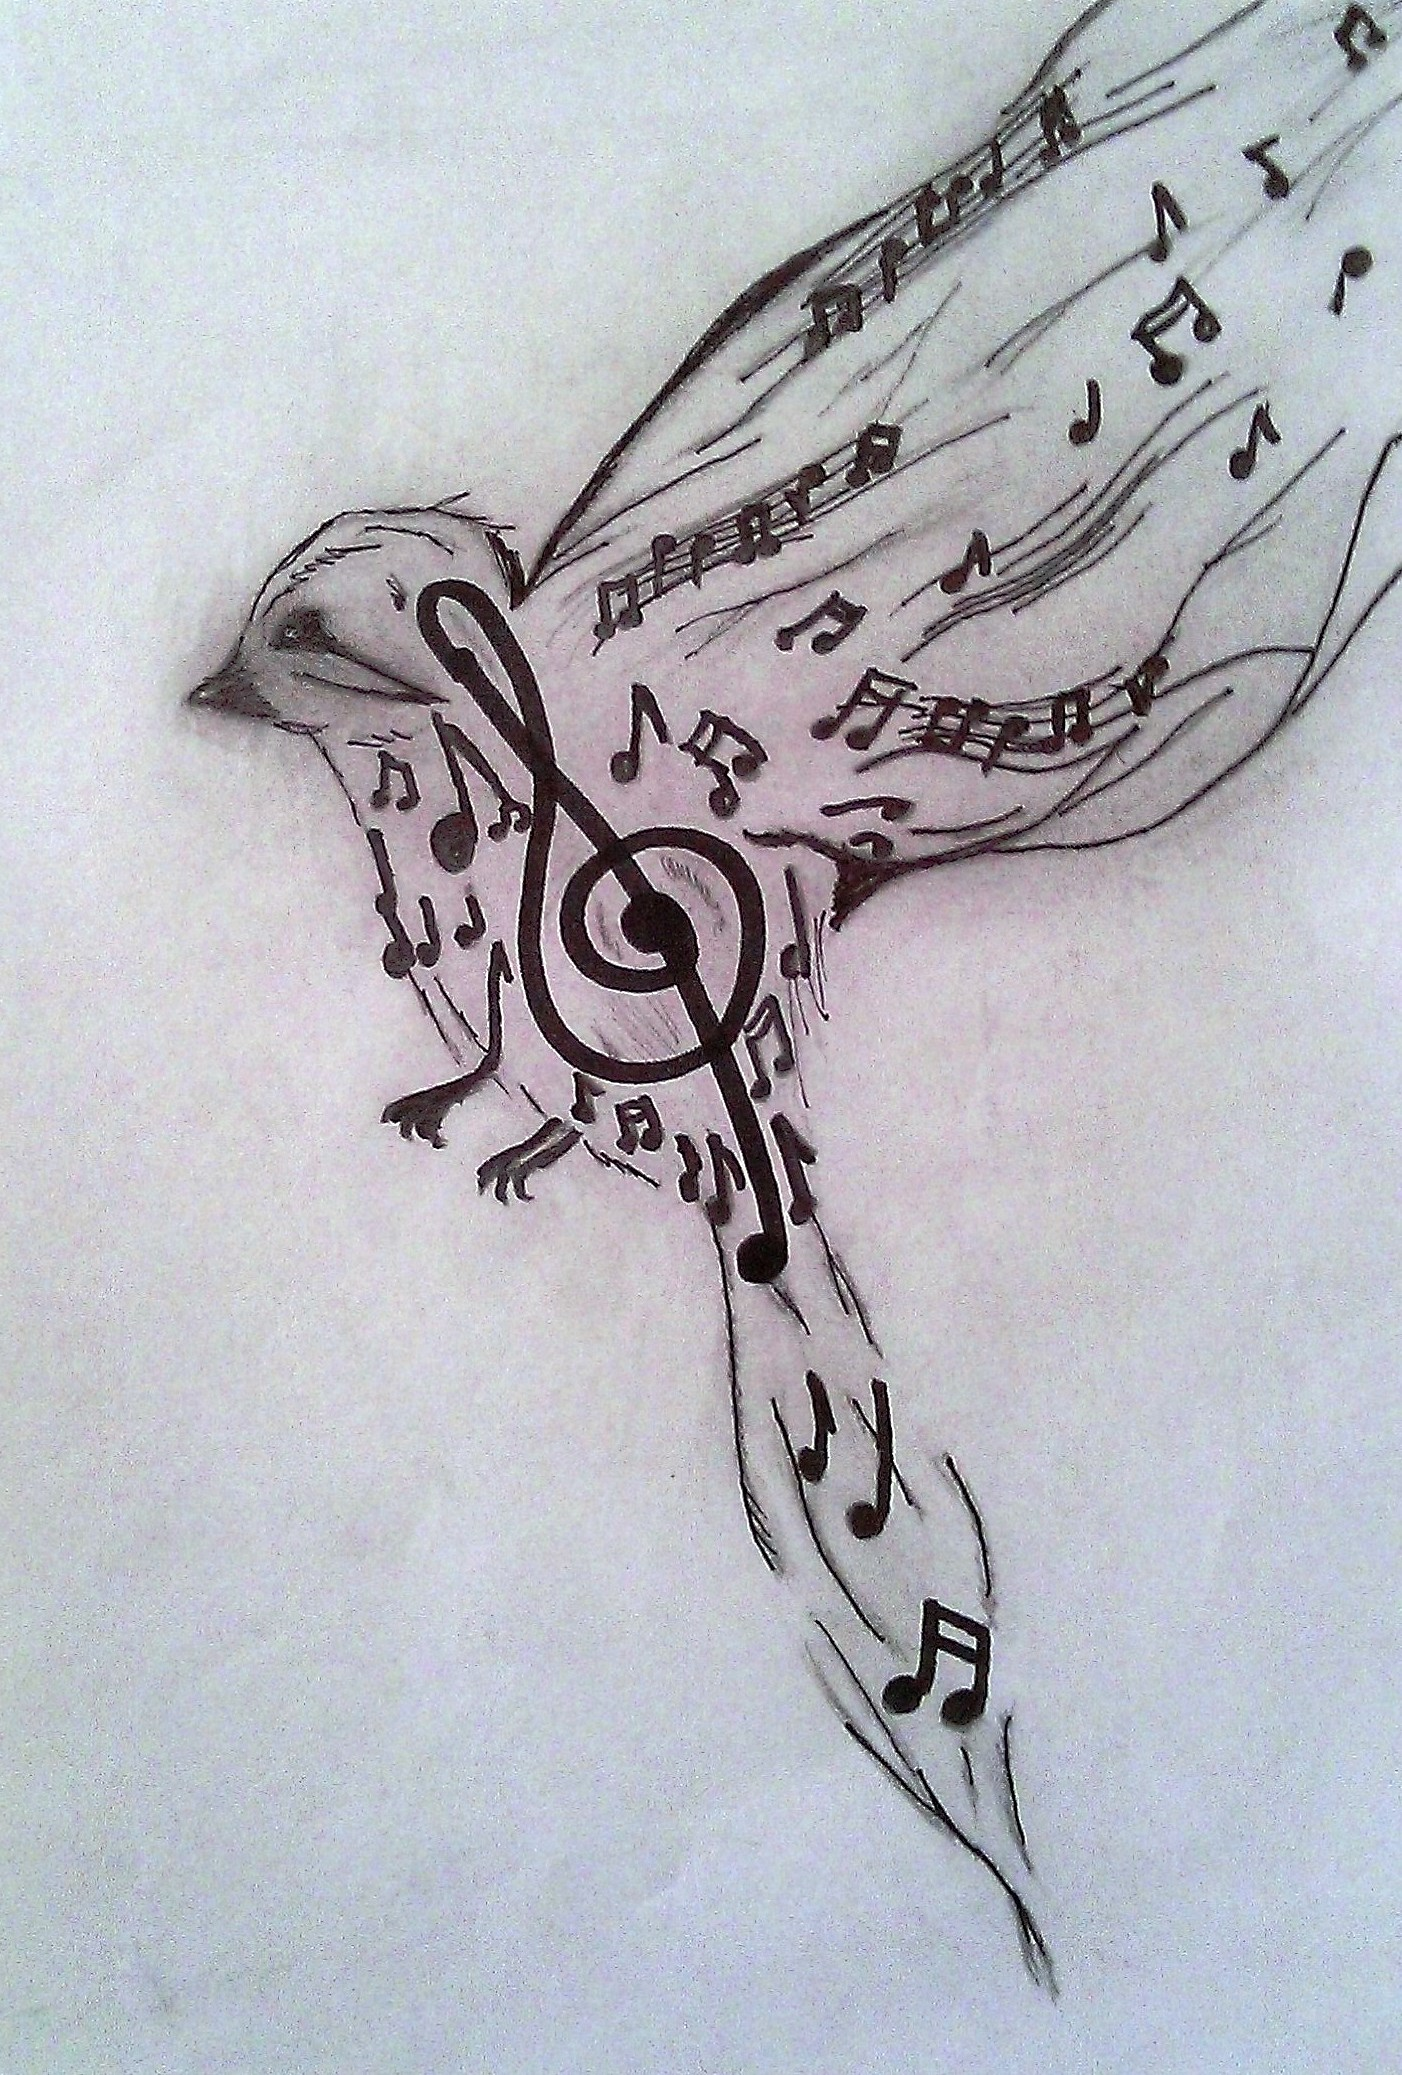 Art bird black clef draw drawings music pencil white